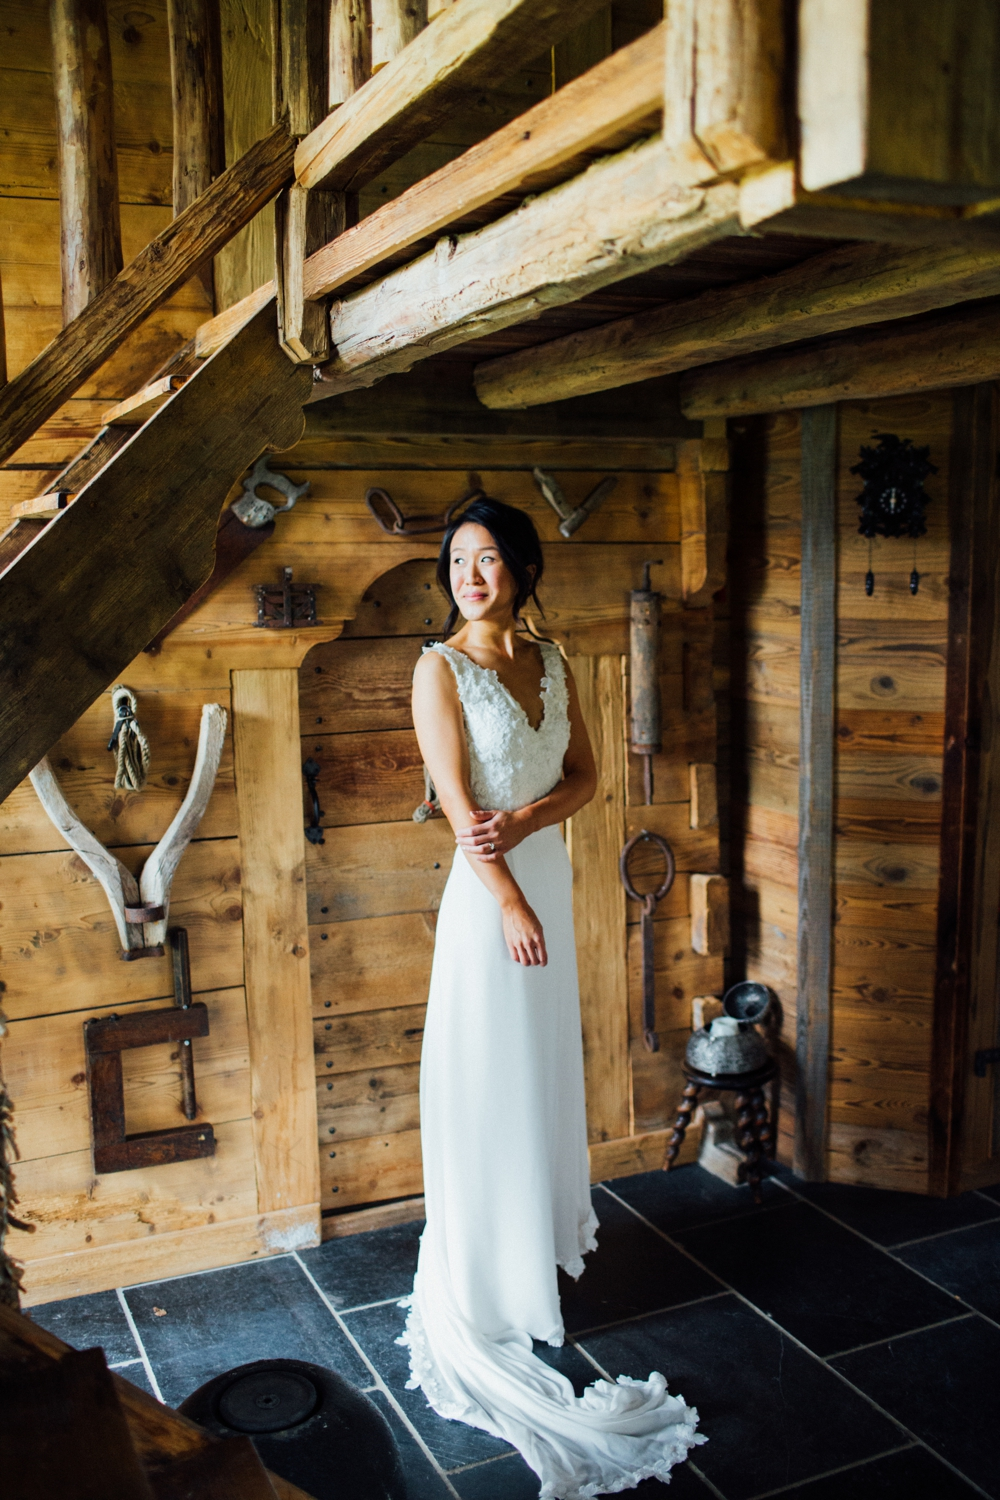 xian-craig-wedding-morzine-ferme-lac-vert-montriond-french-alps_0022.jpg